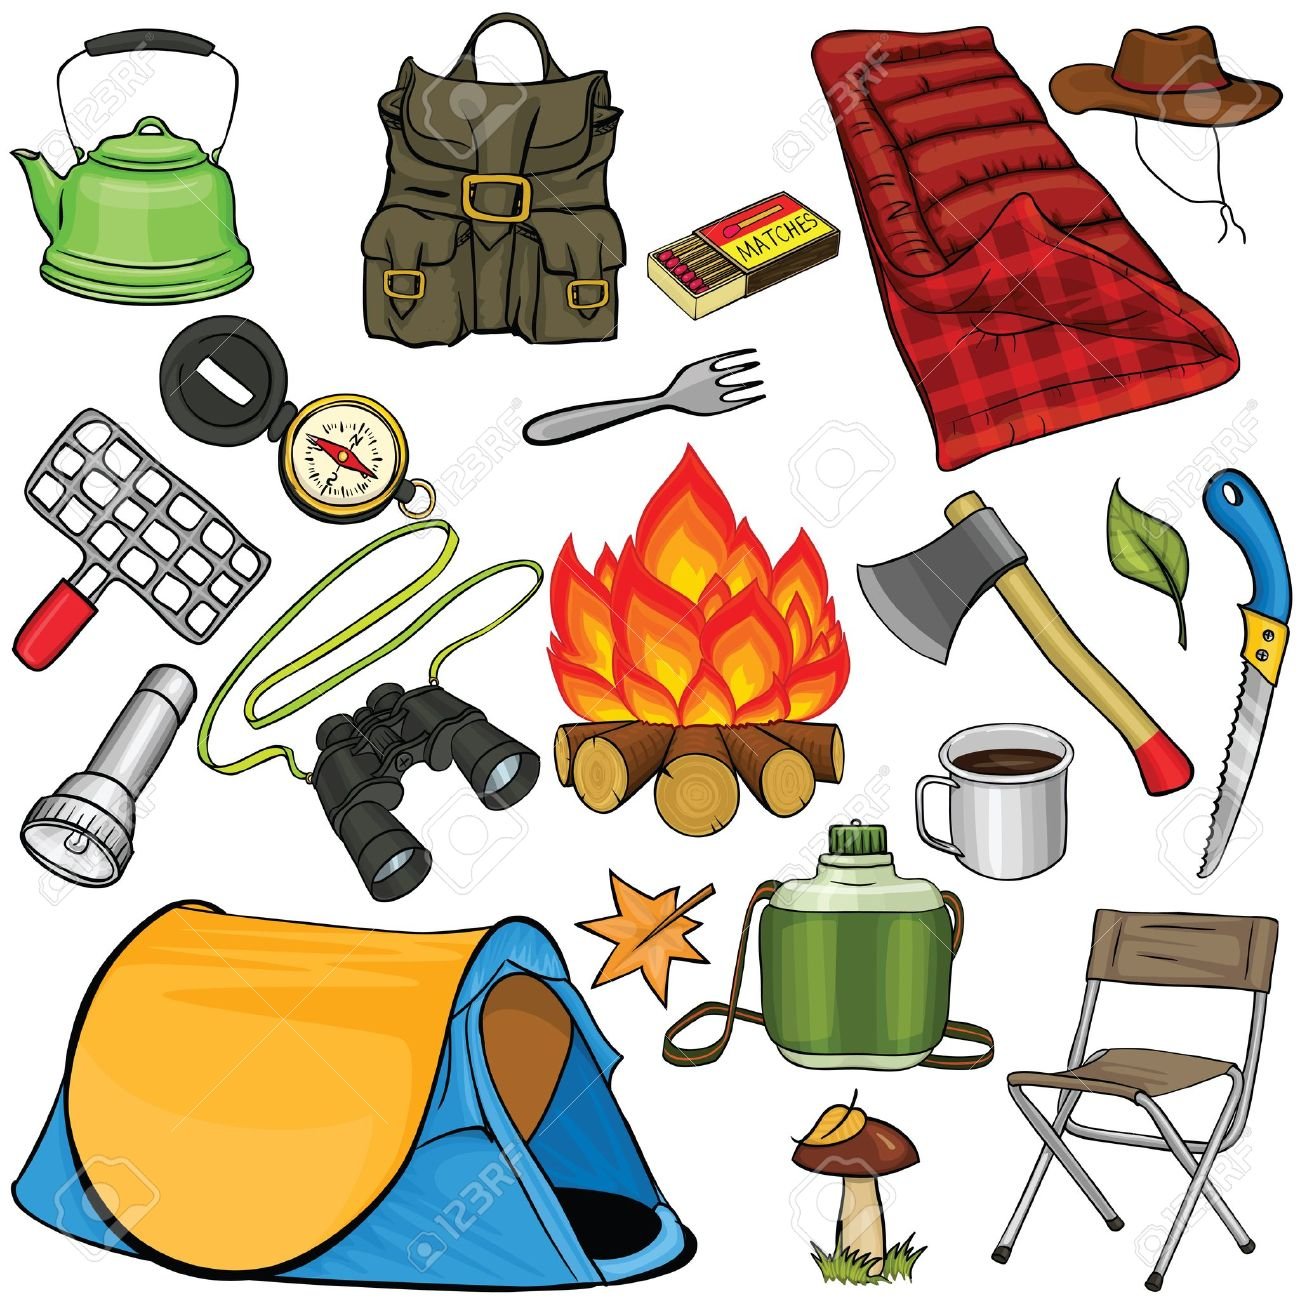 Camping equipment clipart #20